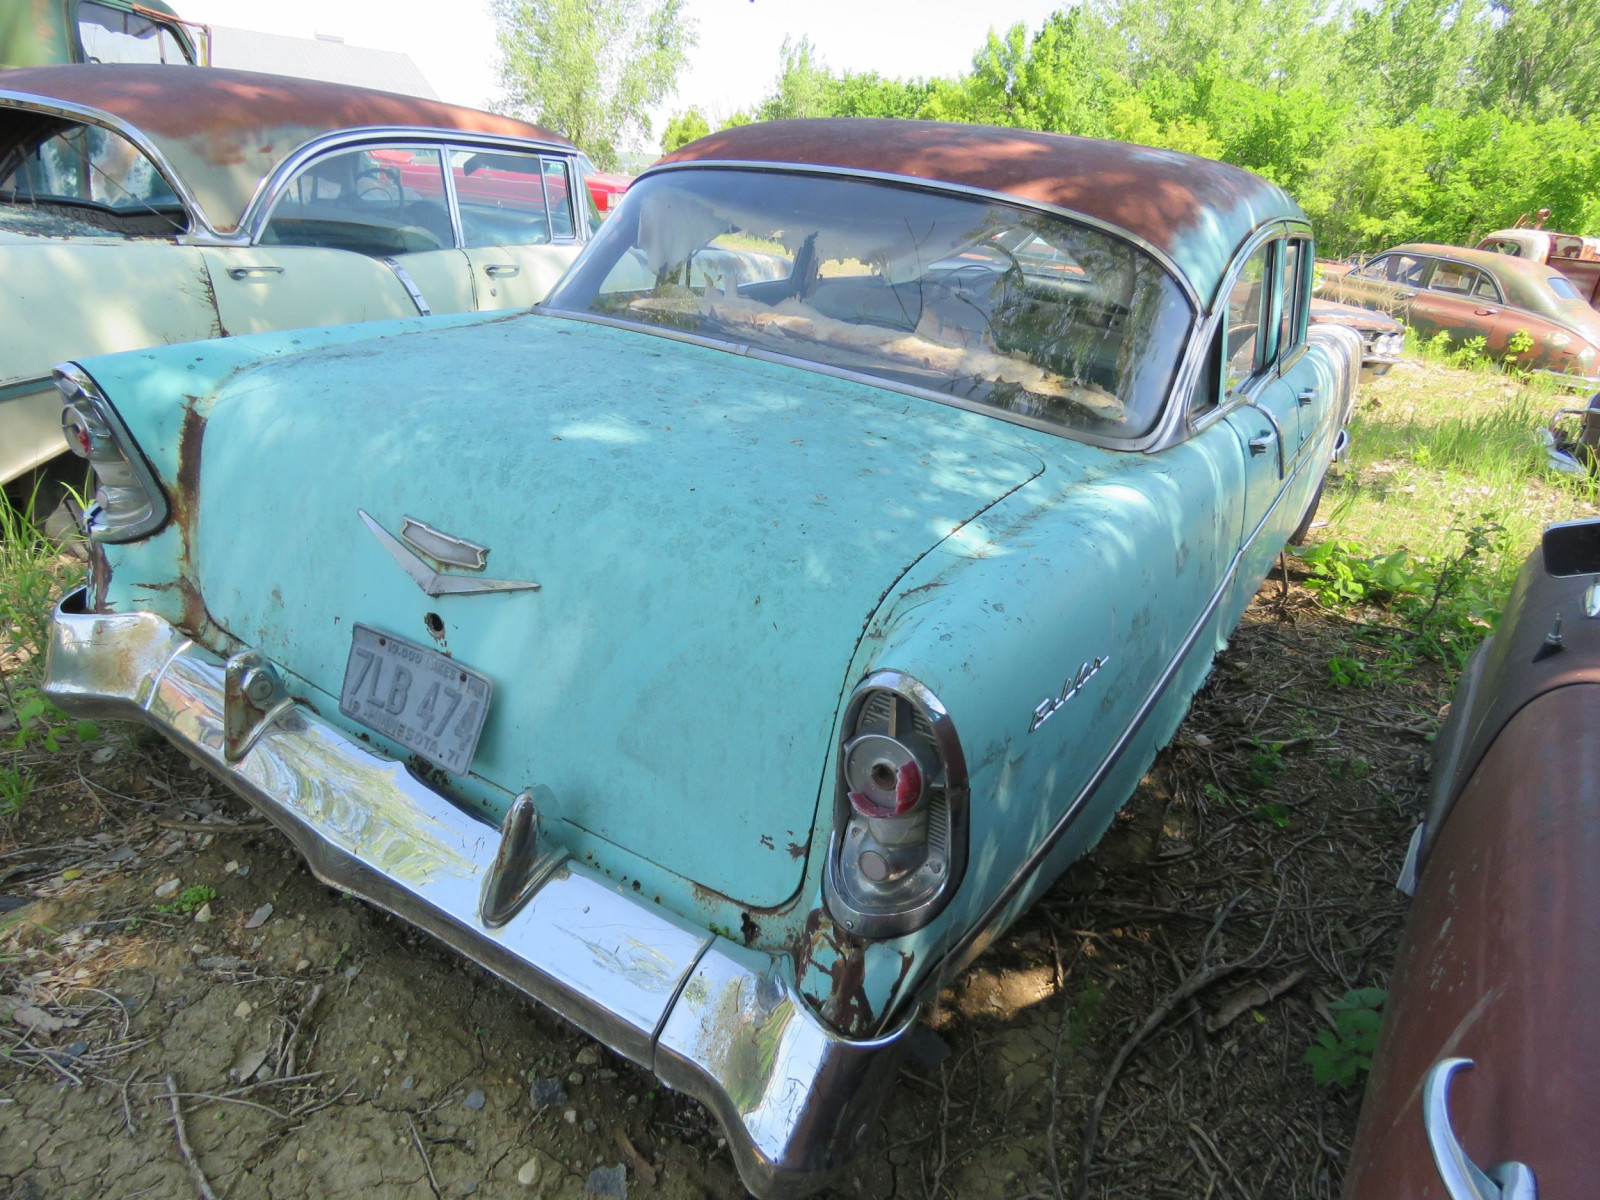 1956 Chevrolet Belair 4dr Sedan for Project or parts VC56J080987 - Image 5